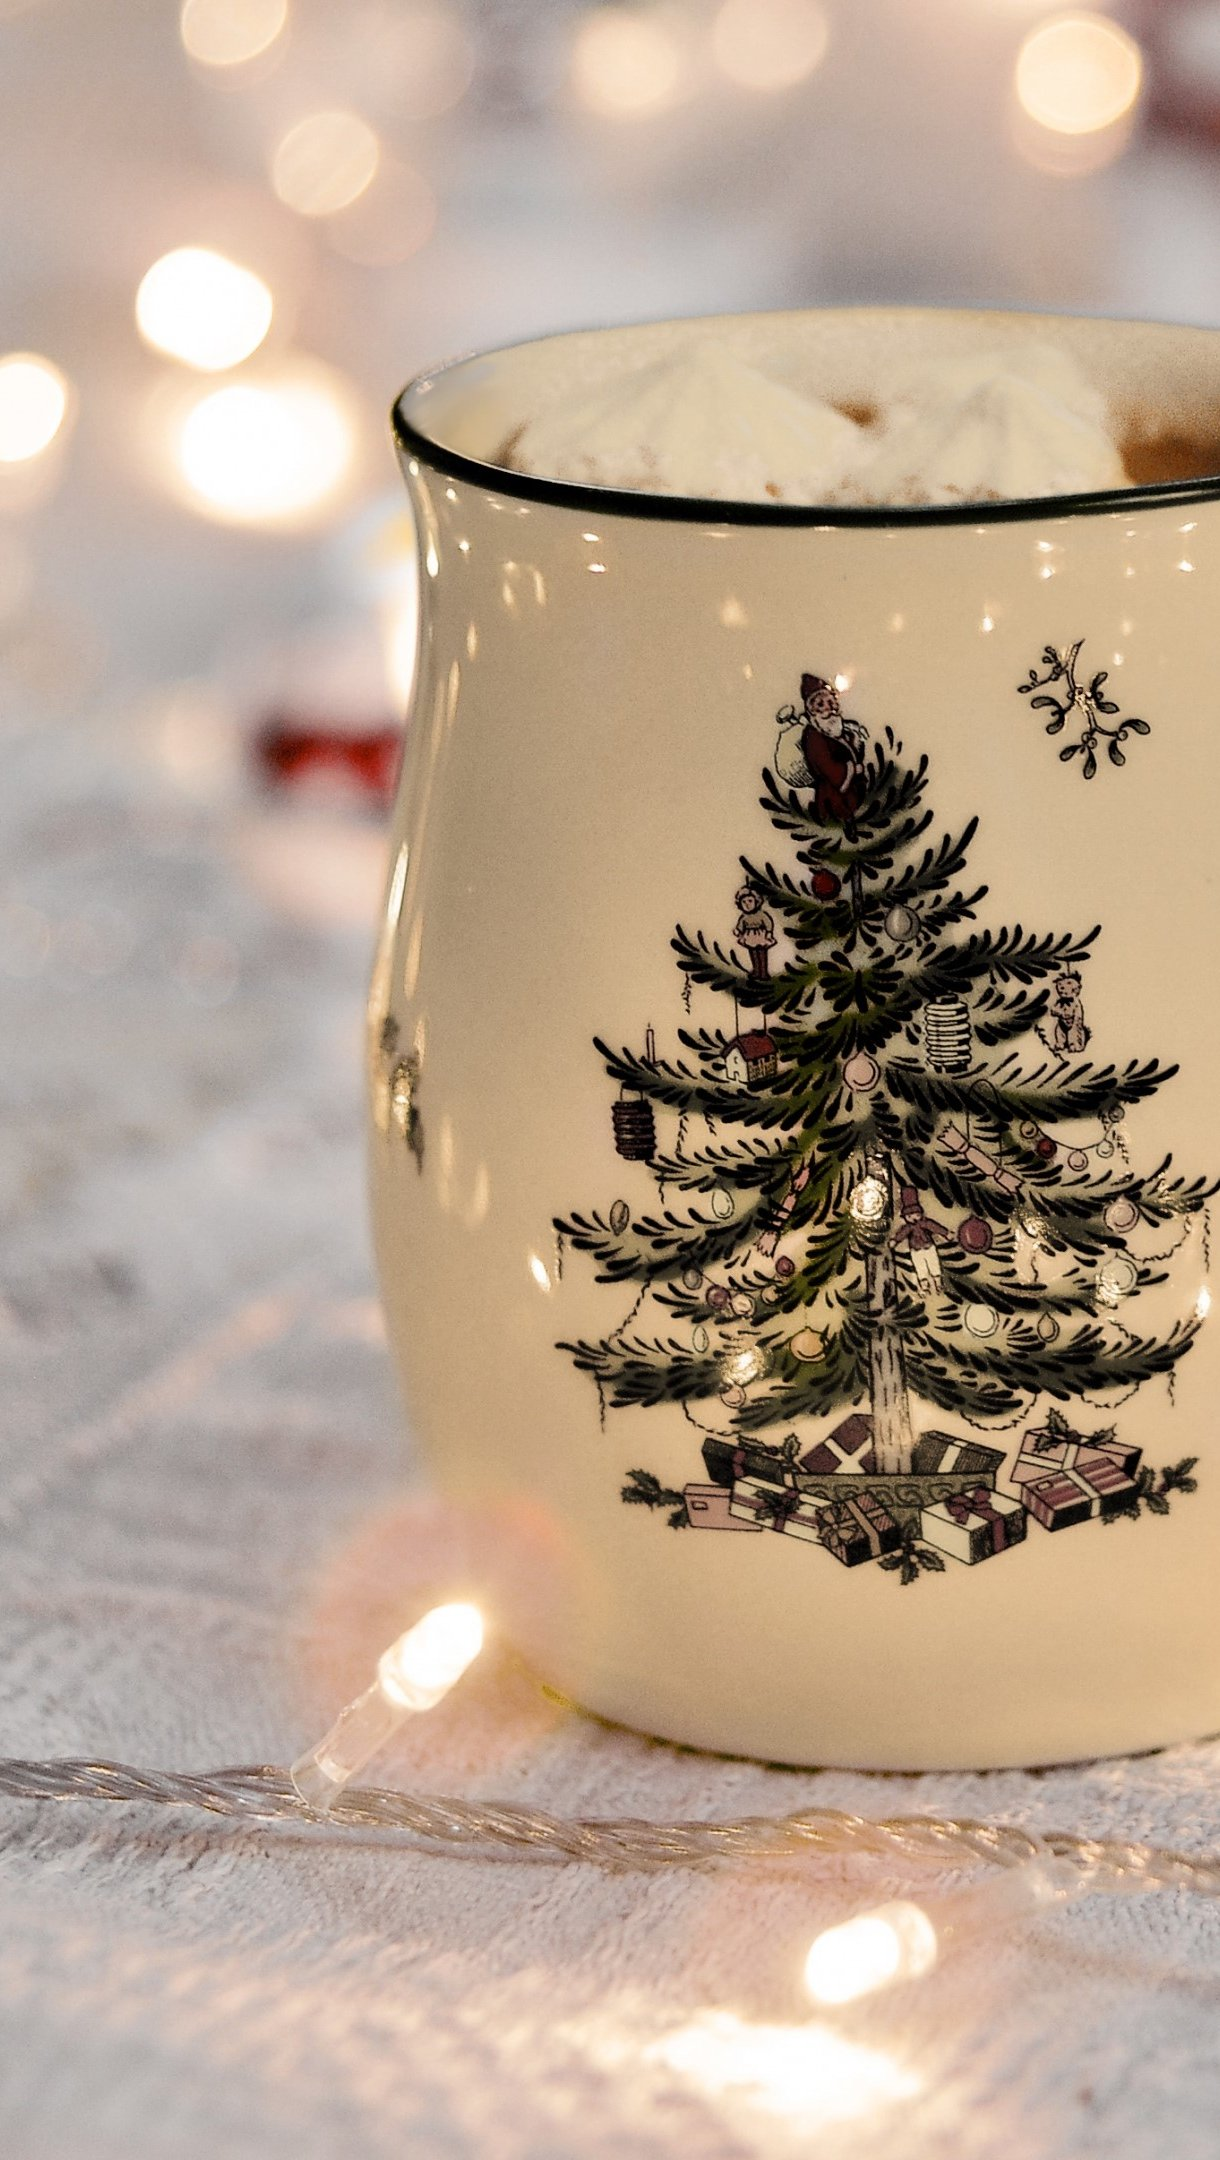 Wallpaper Christmas mug with lights Vertical